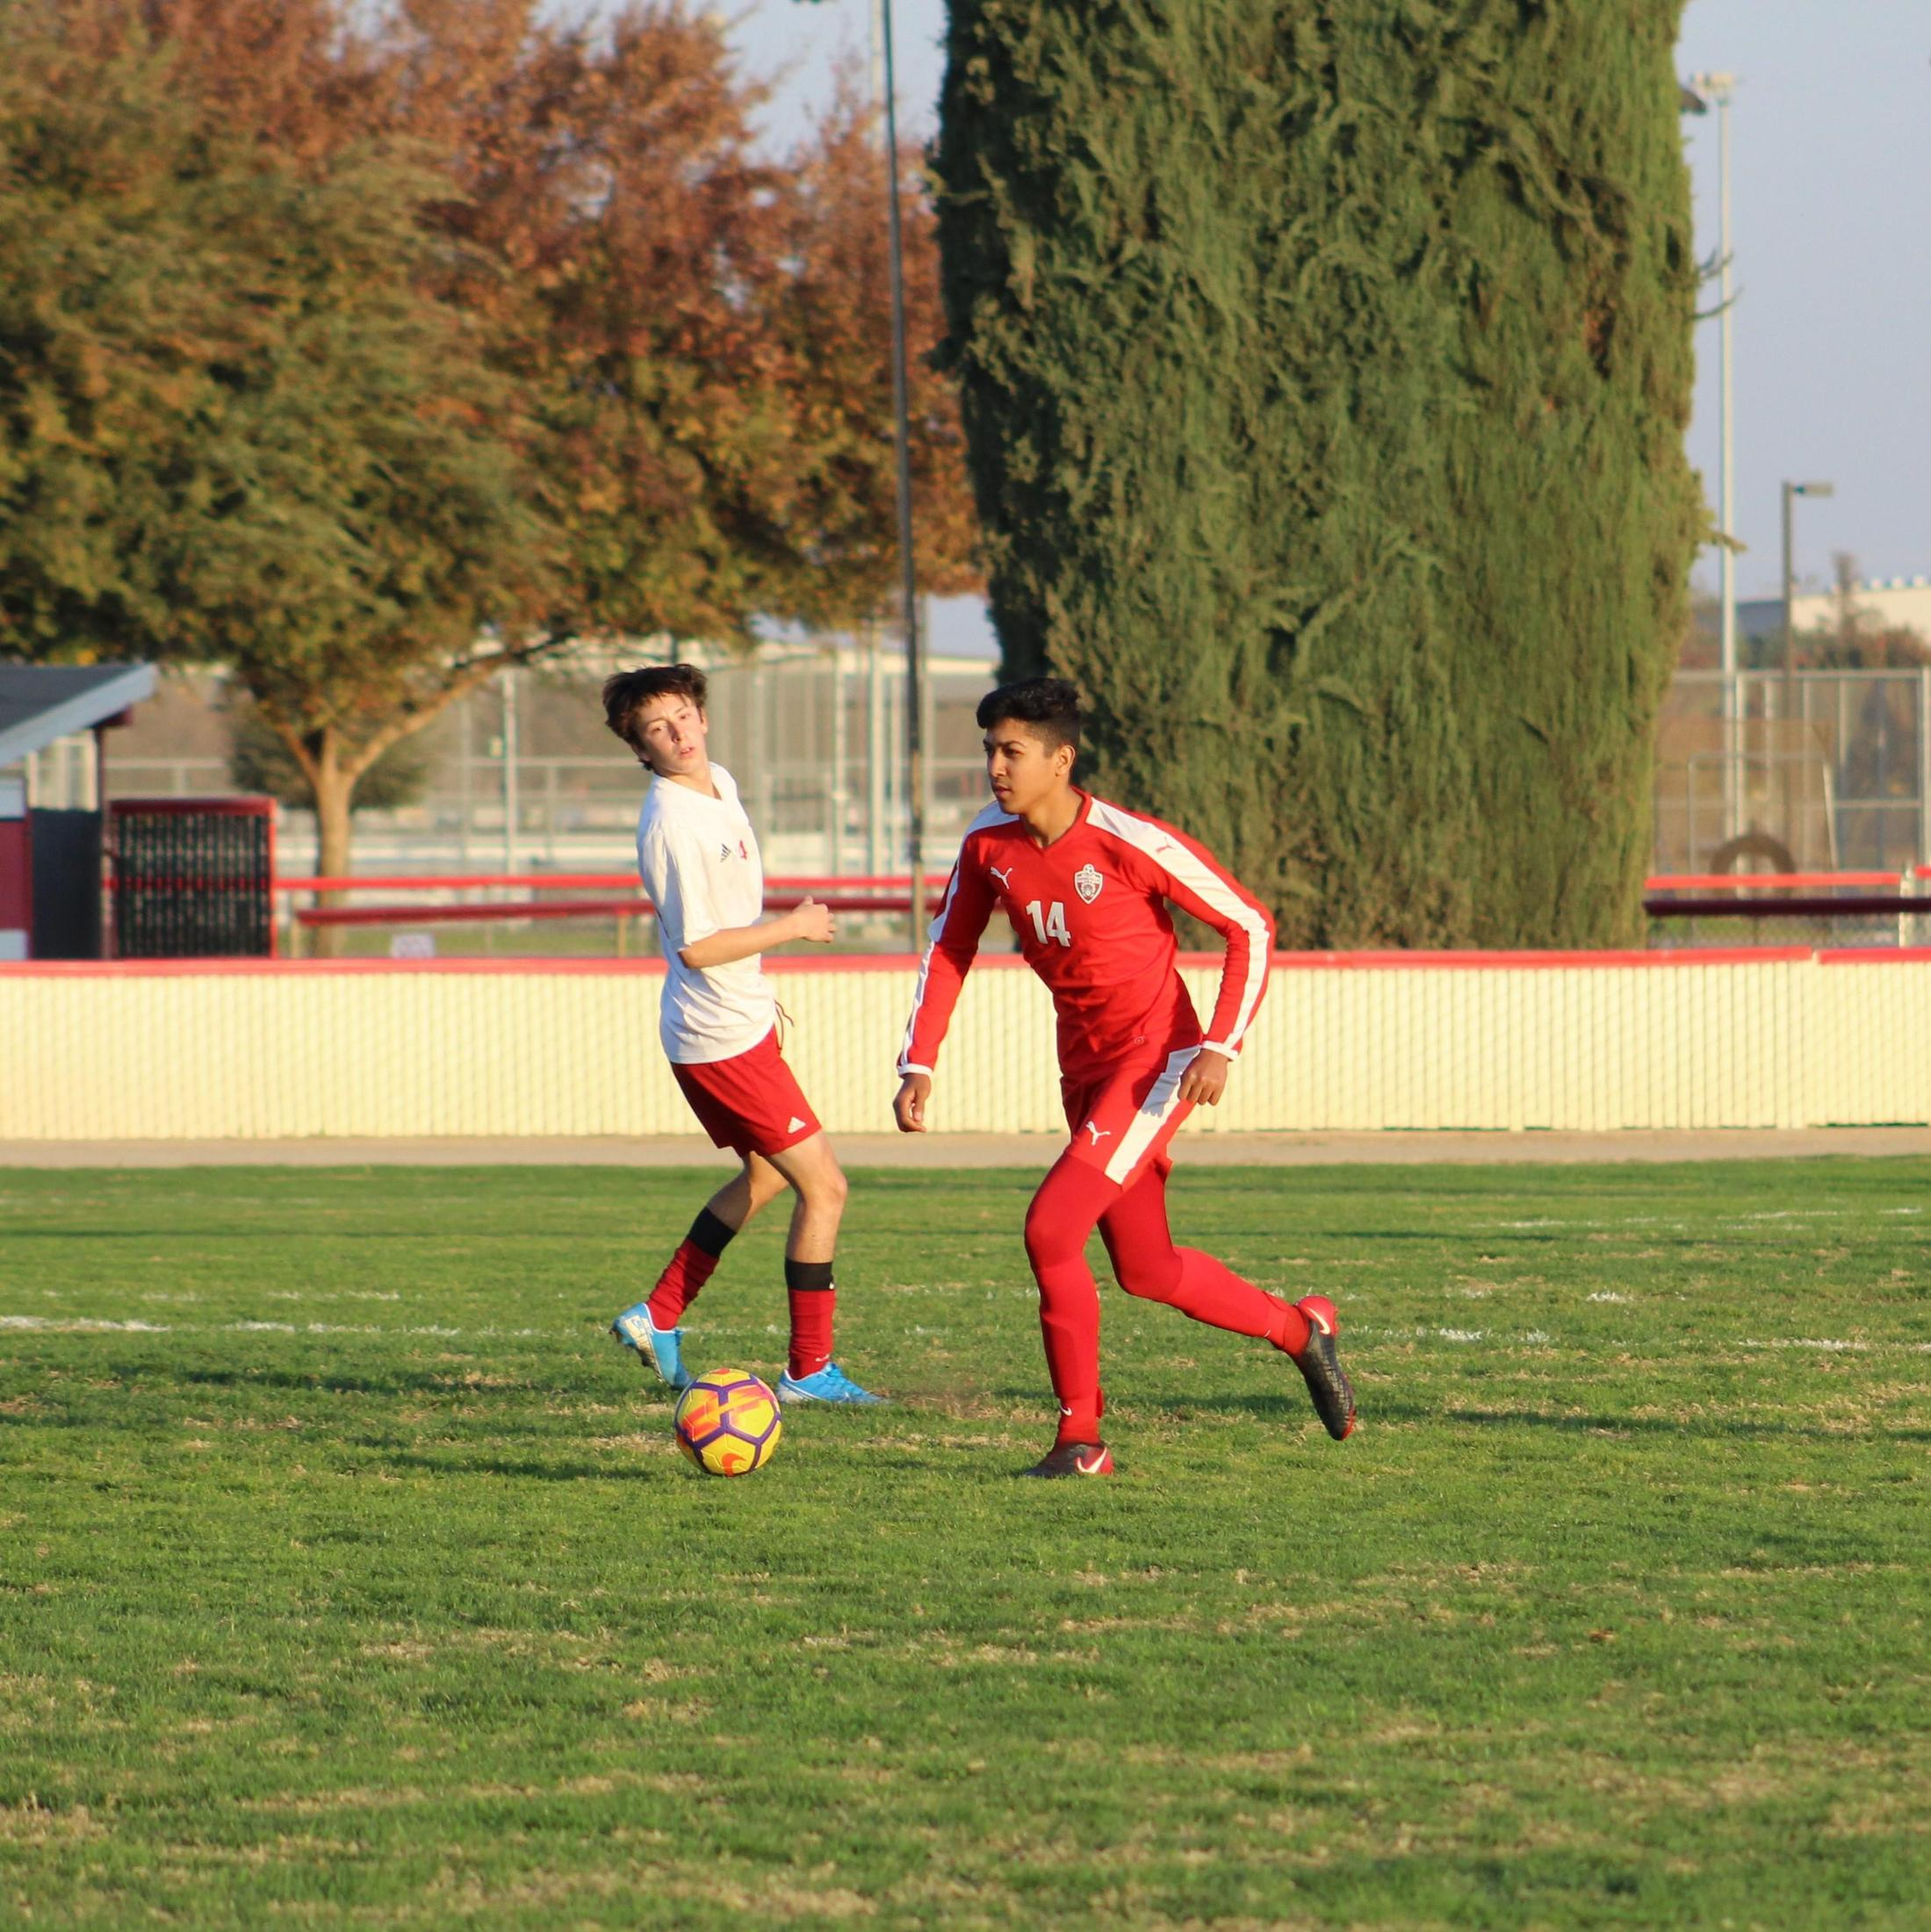 Kevin Nava running with the ball